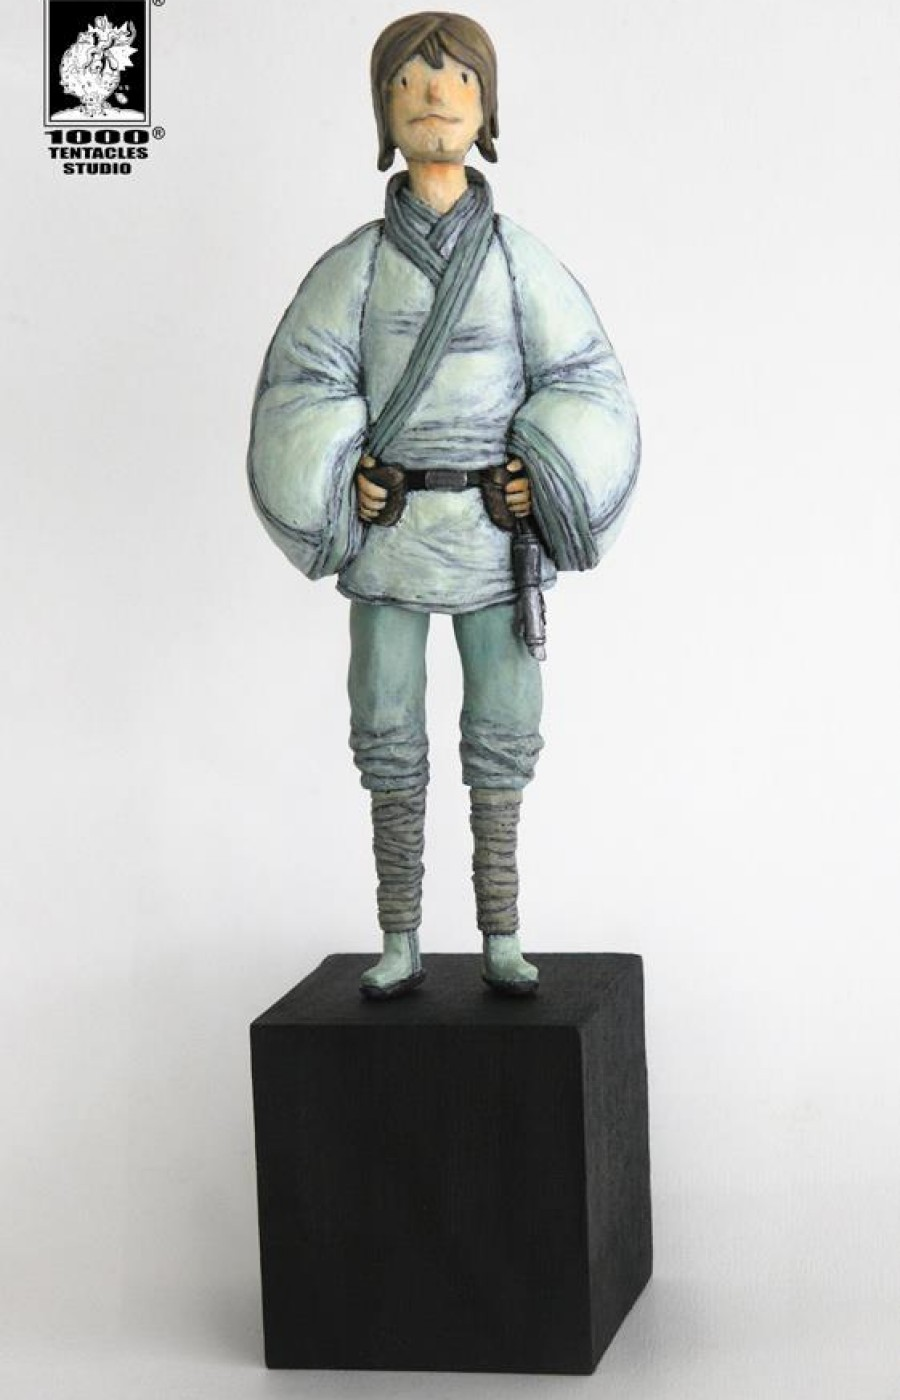 1000Tentacles Star Wars series luke skywalker 2